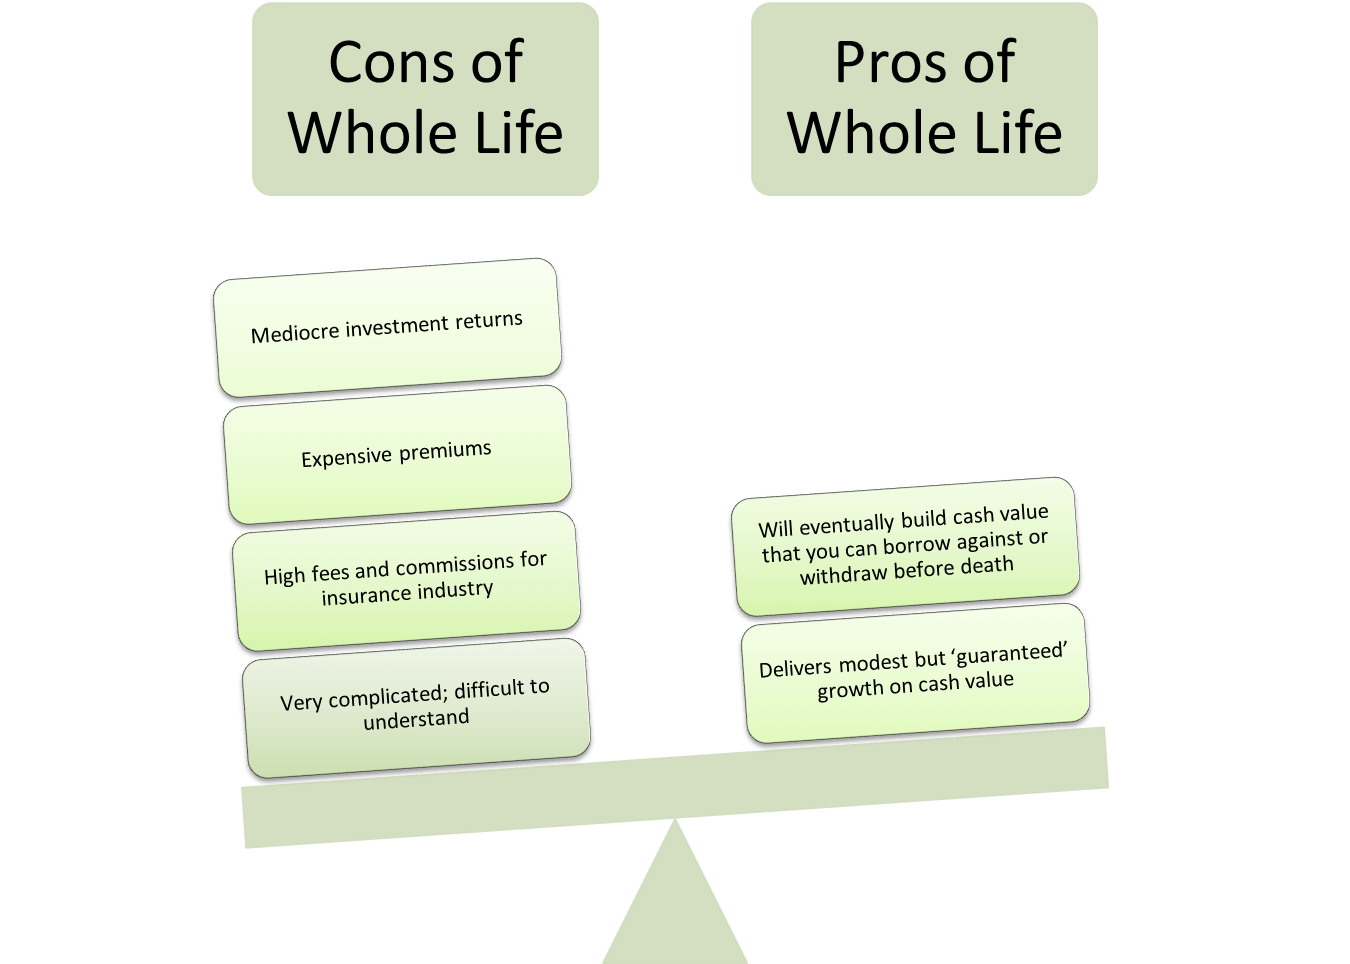 The pros and cons of whole life insurance for young savers.